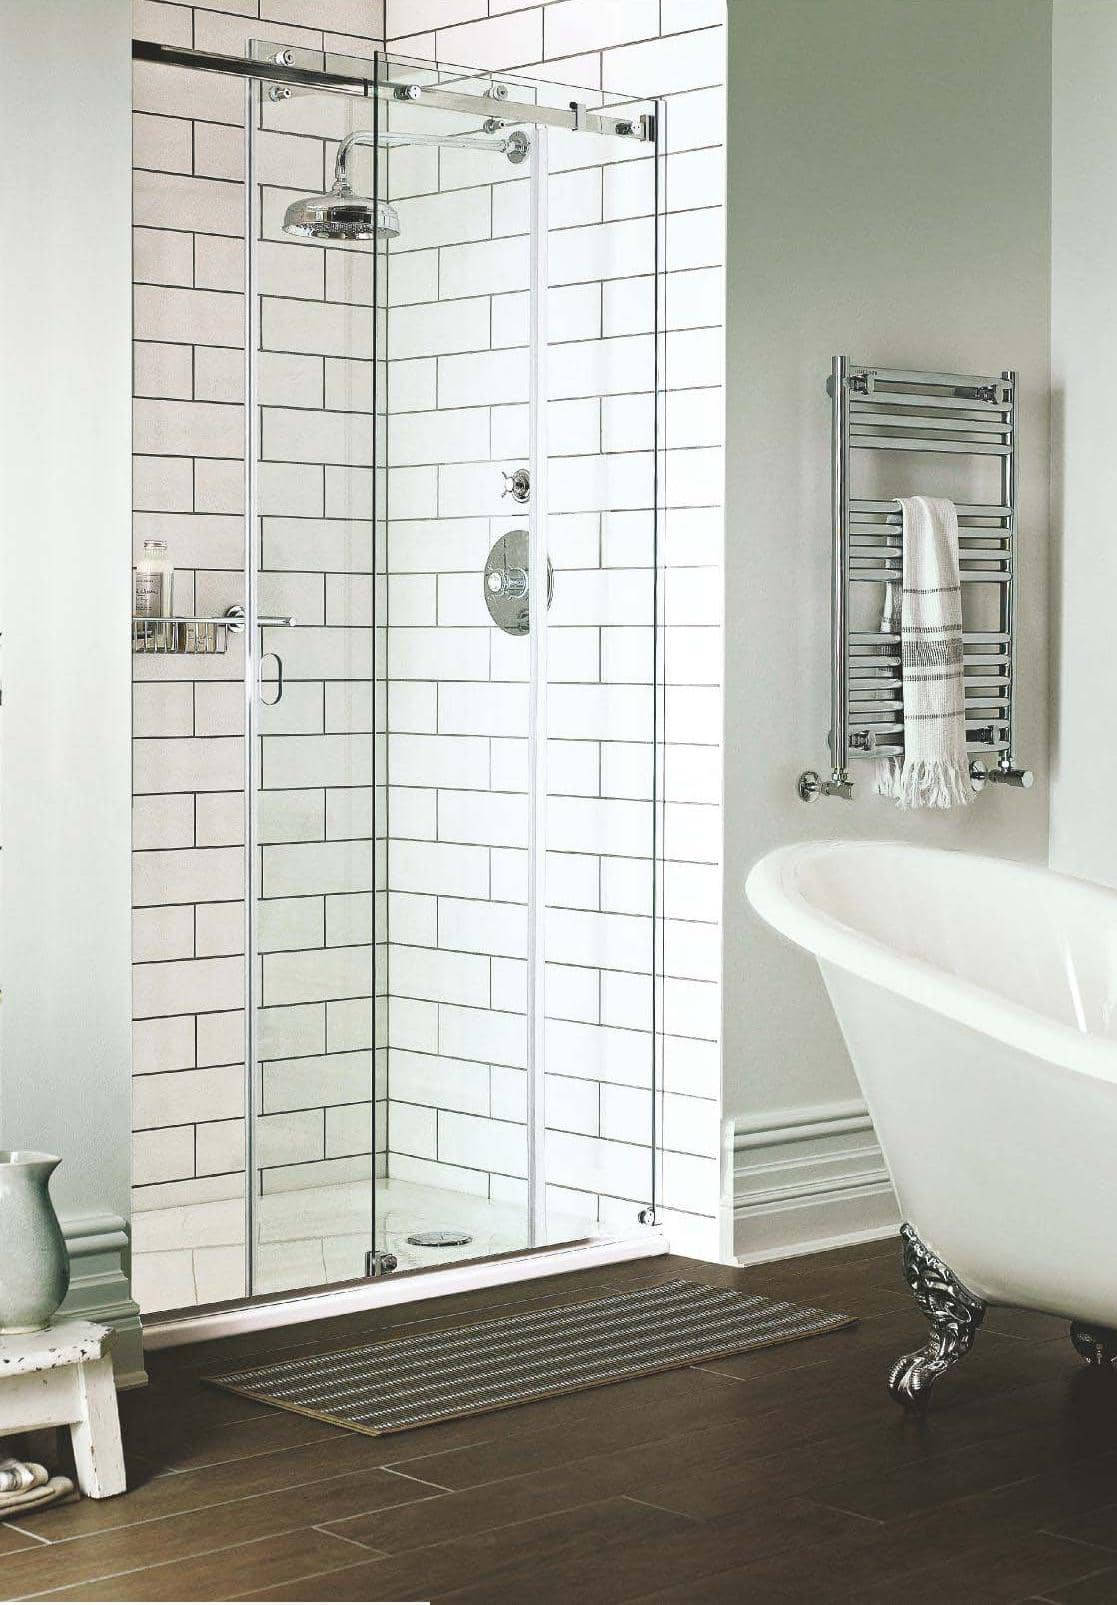 Towel Rails To Warm To